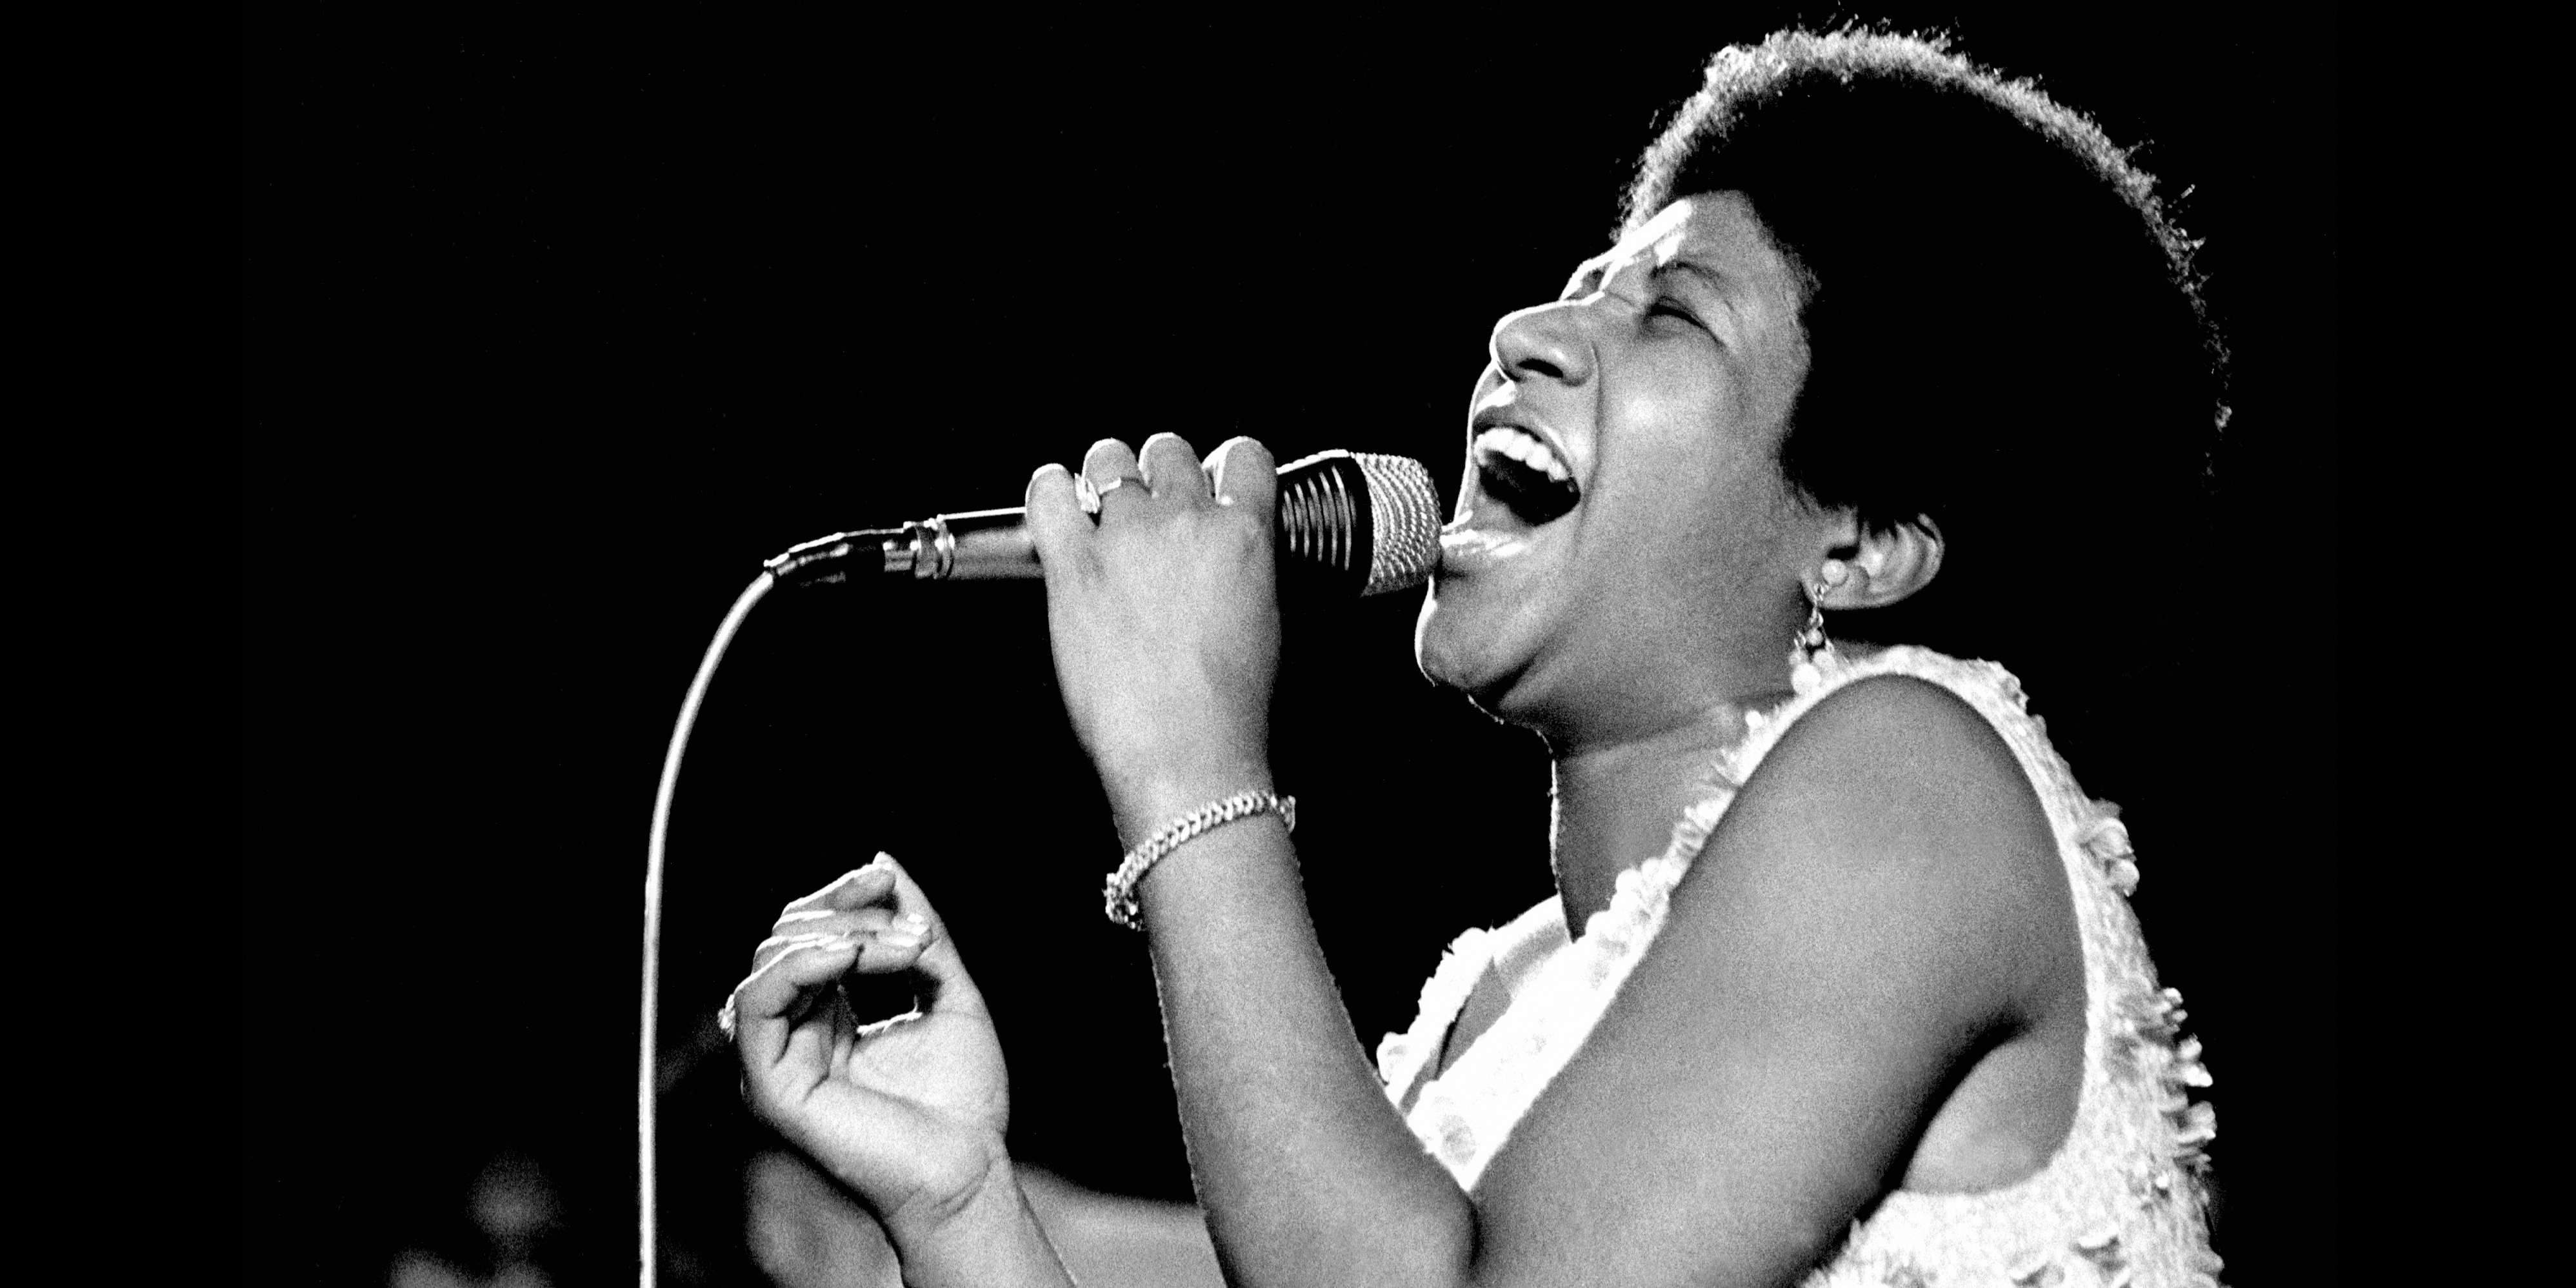 ITALY - AUGUST 01:  Photo of Aretha Franklin 4; live in Palermo  (Photo by Jan Persson/Redferns)